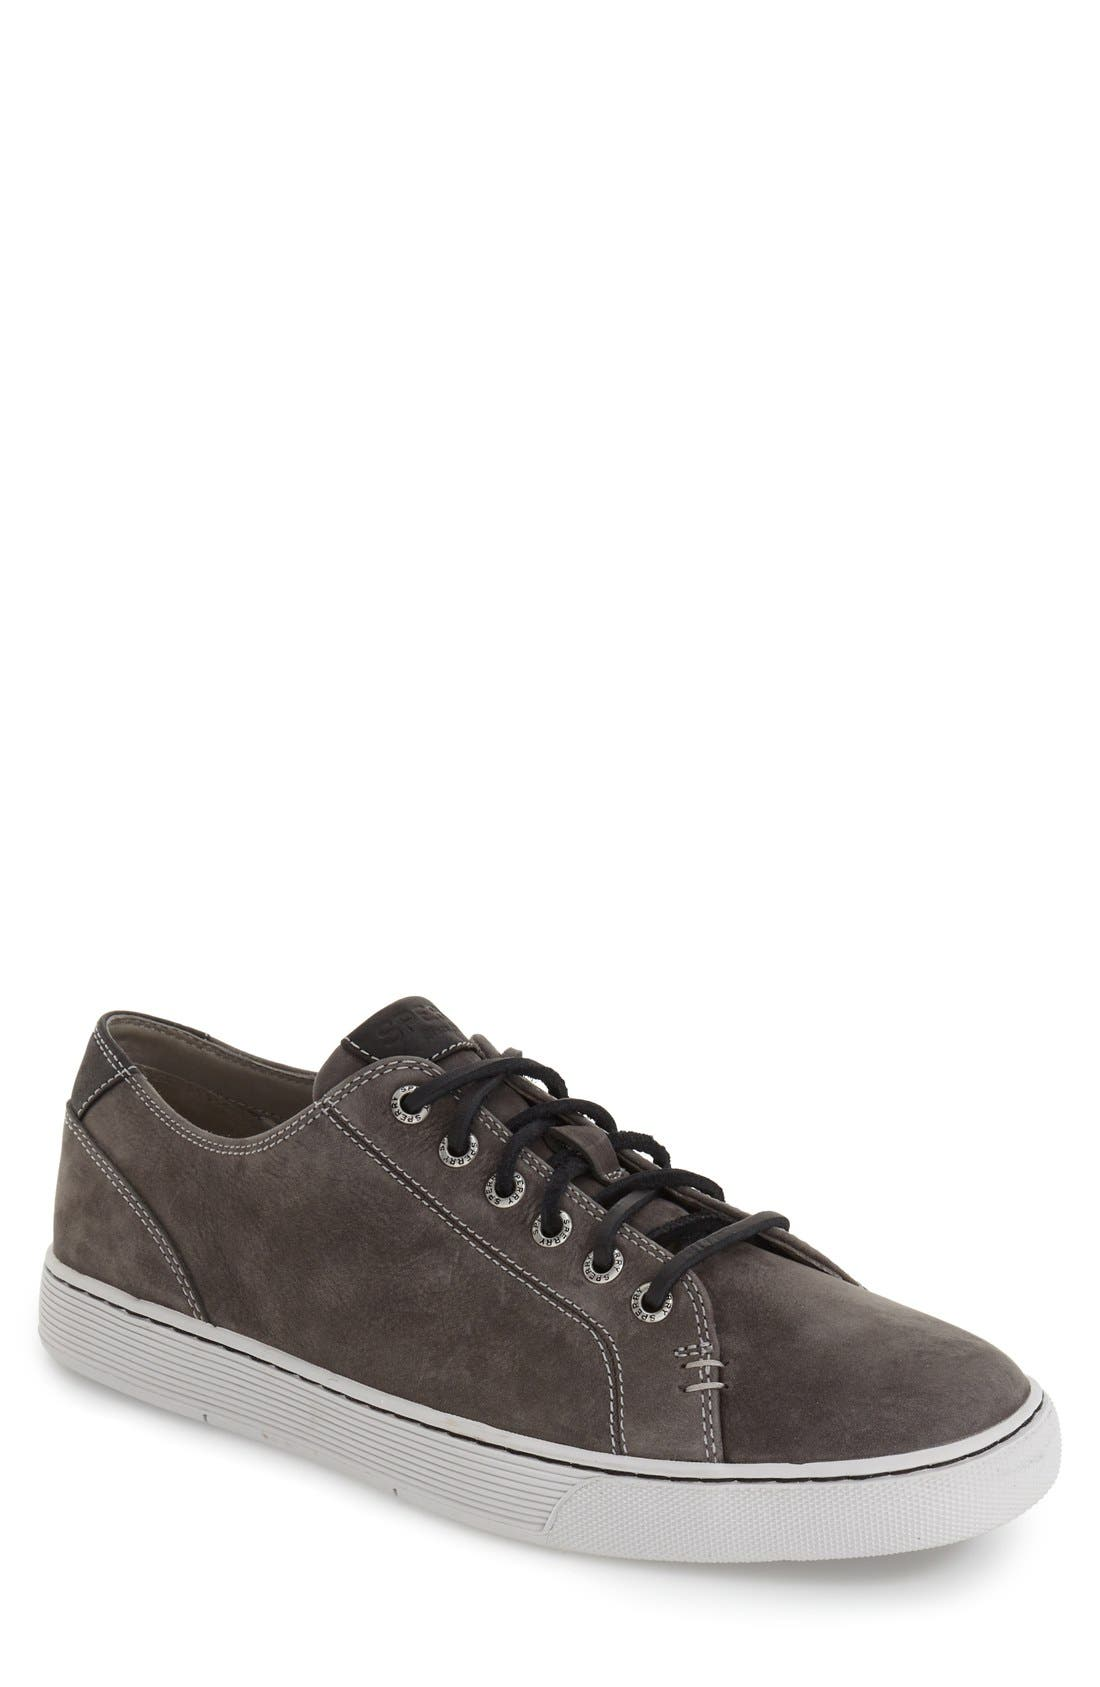 Gold Cup LLT Sneaker,                             Main thumbnail 1, color,                             GREY SUEDE